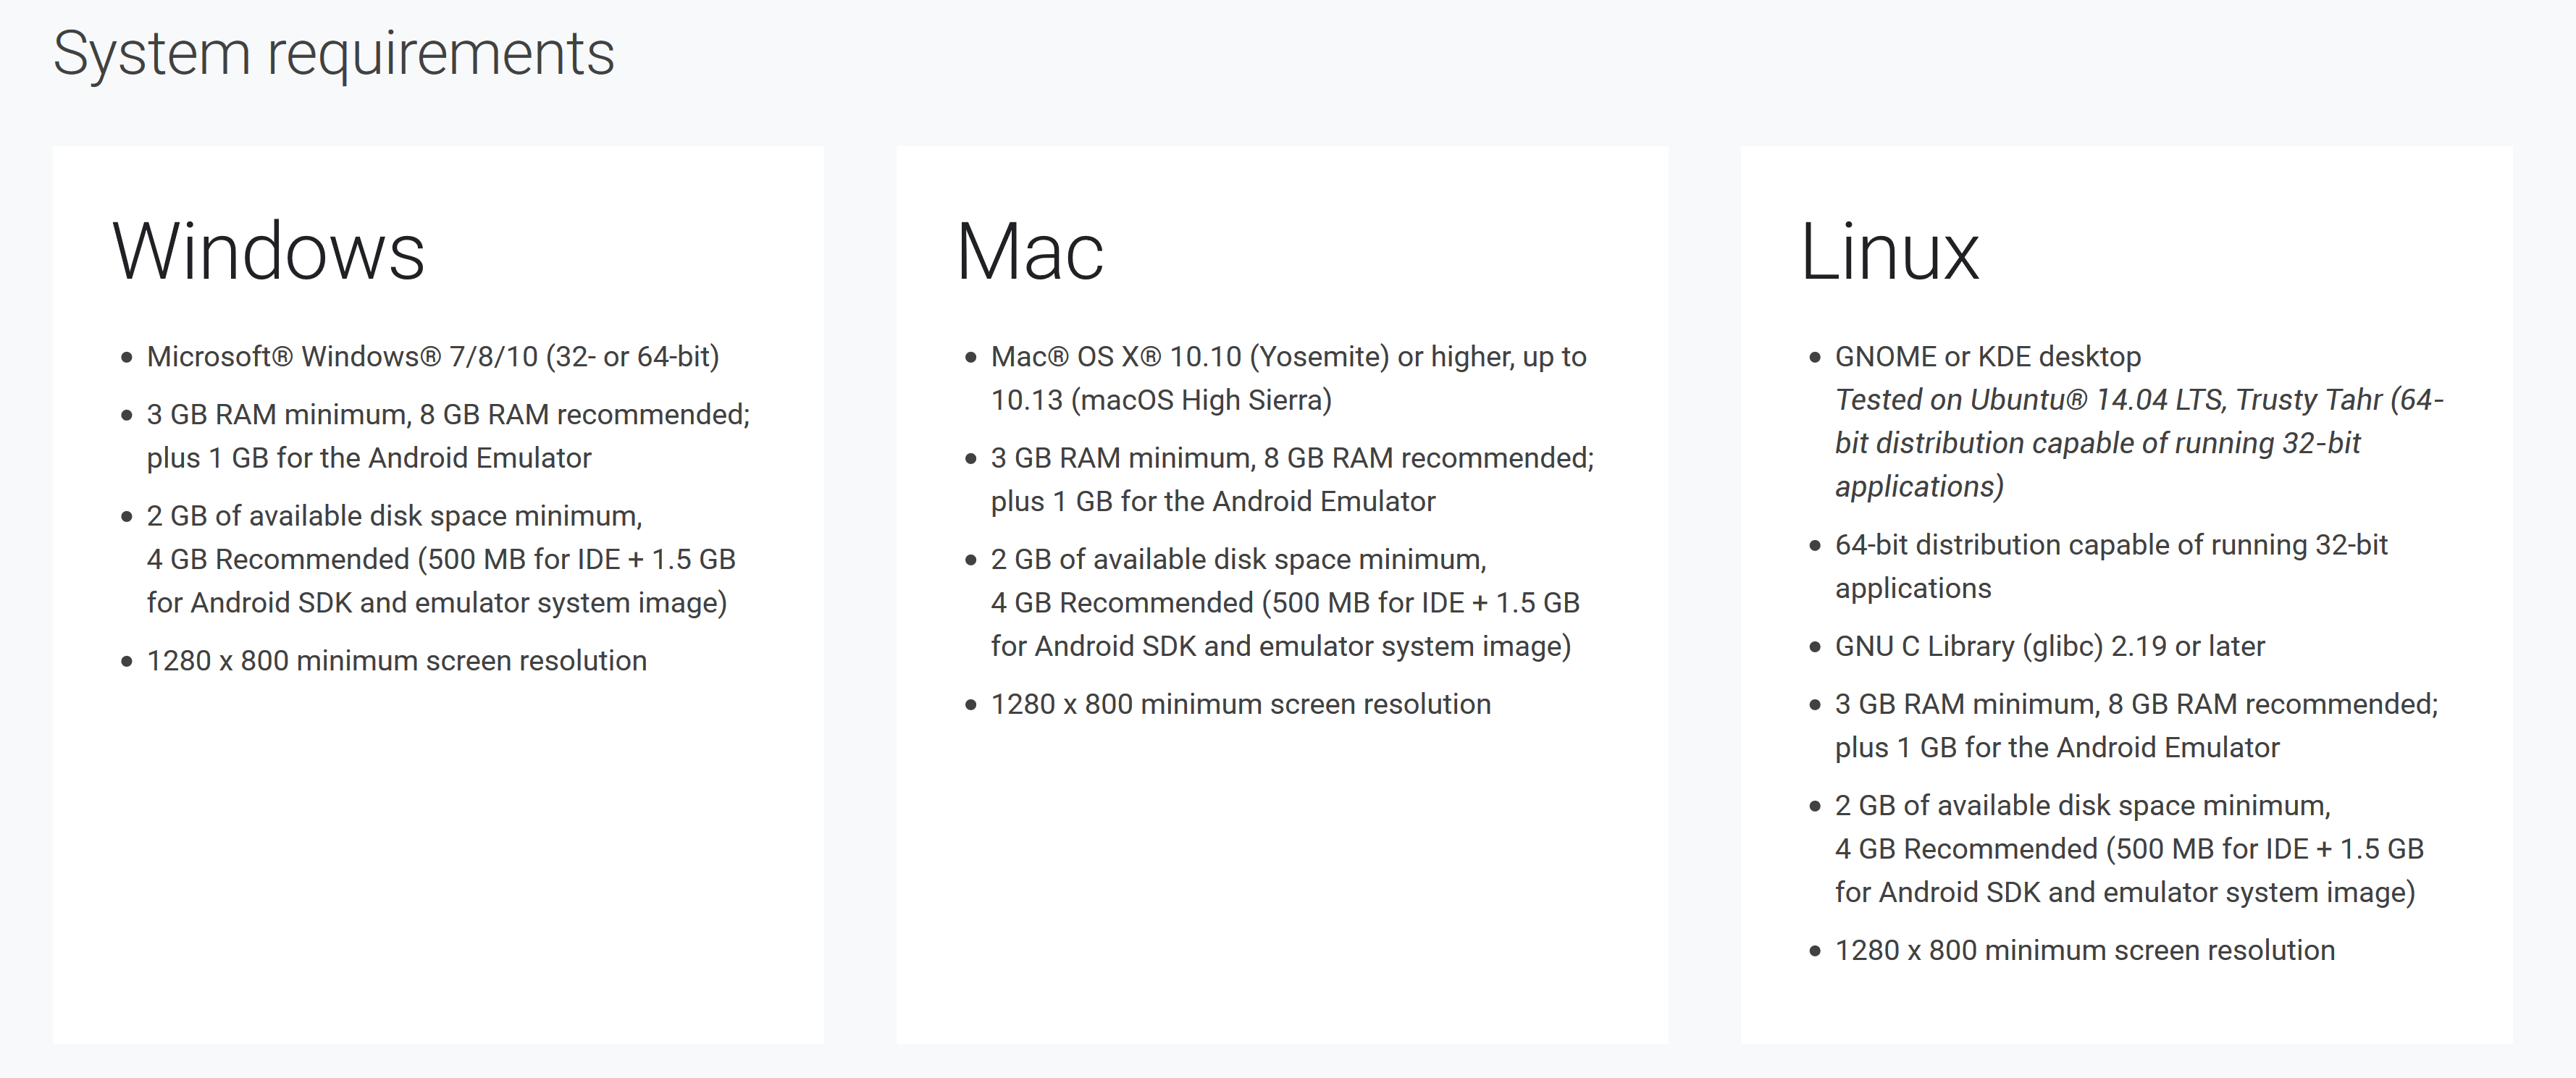 The Android Studio's System Requirements from their [Official Website](https://developer.android.com/studio/)